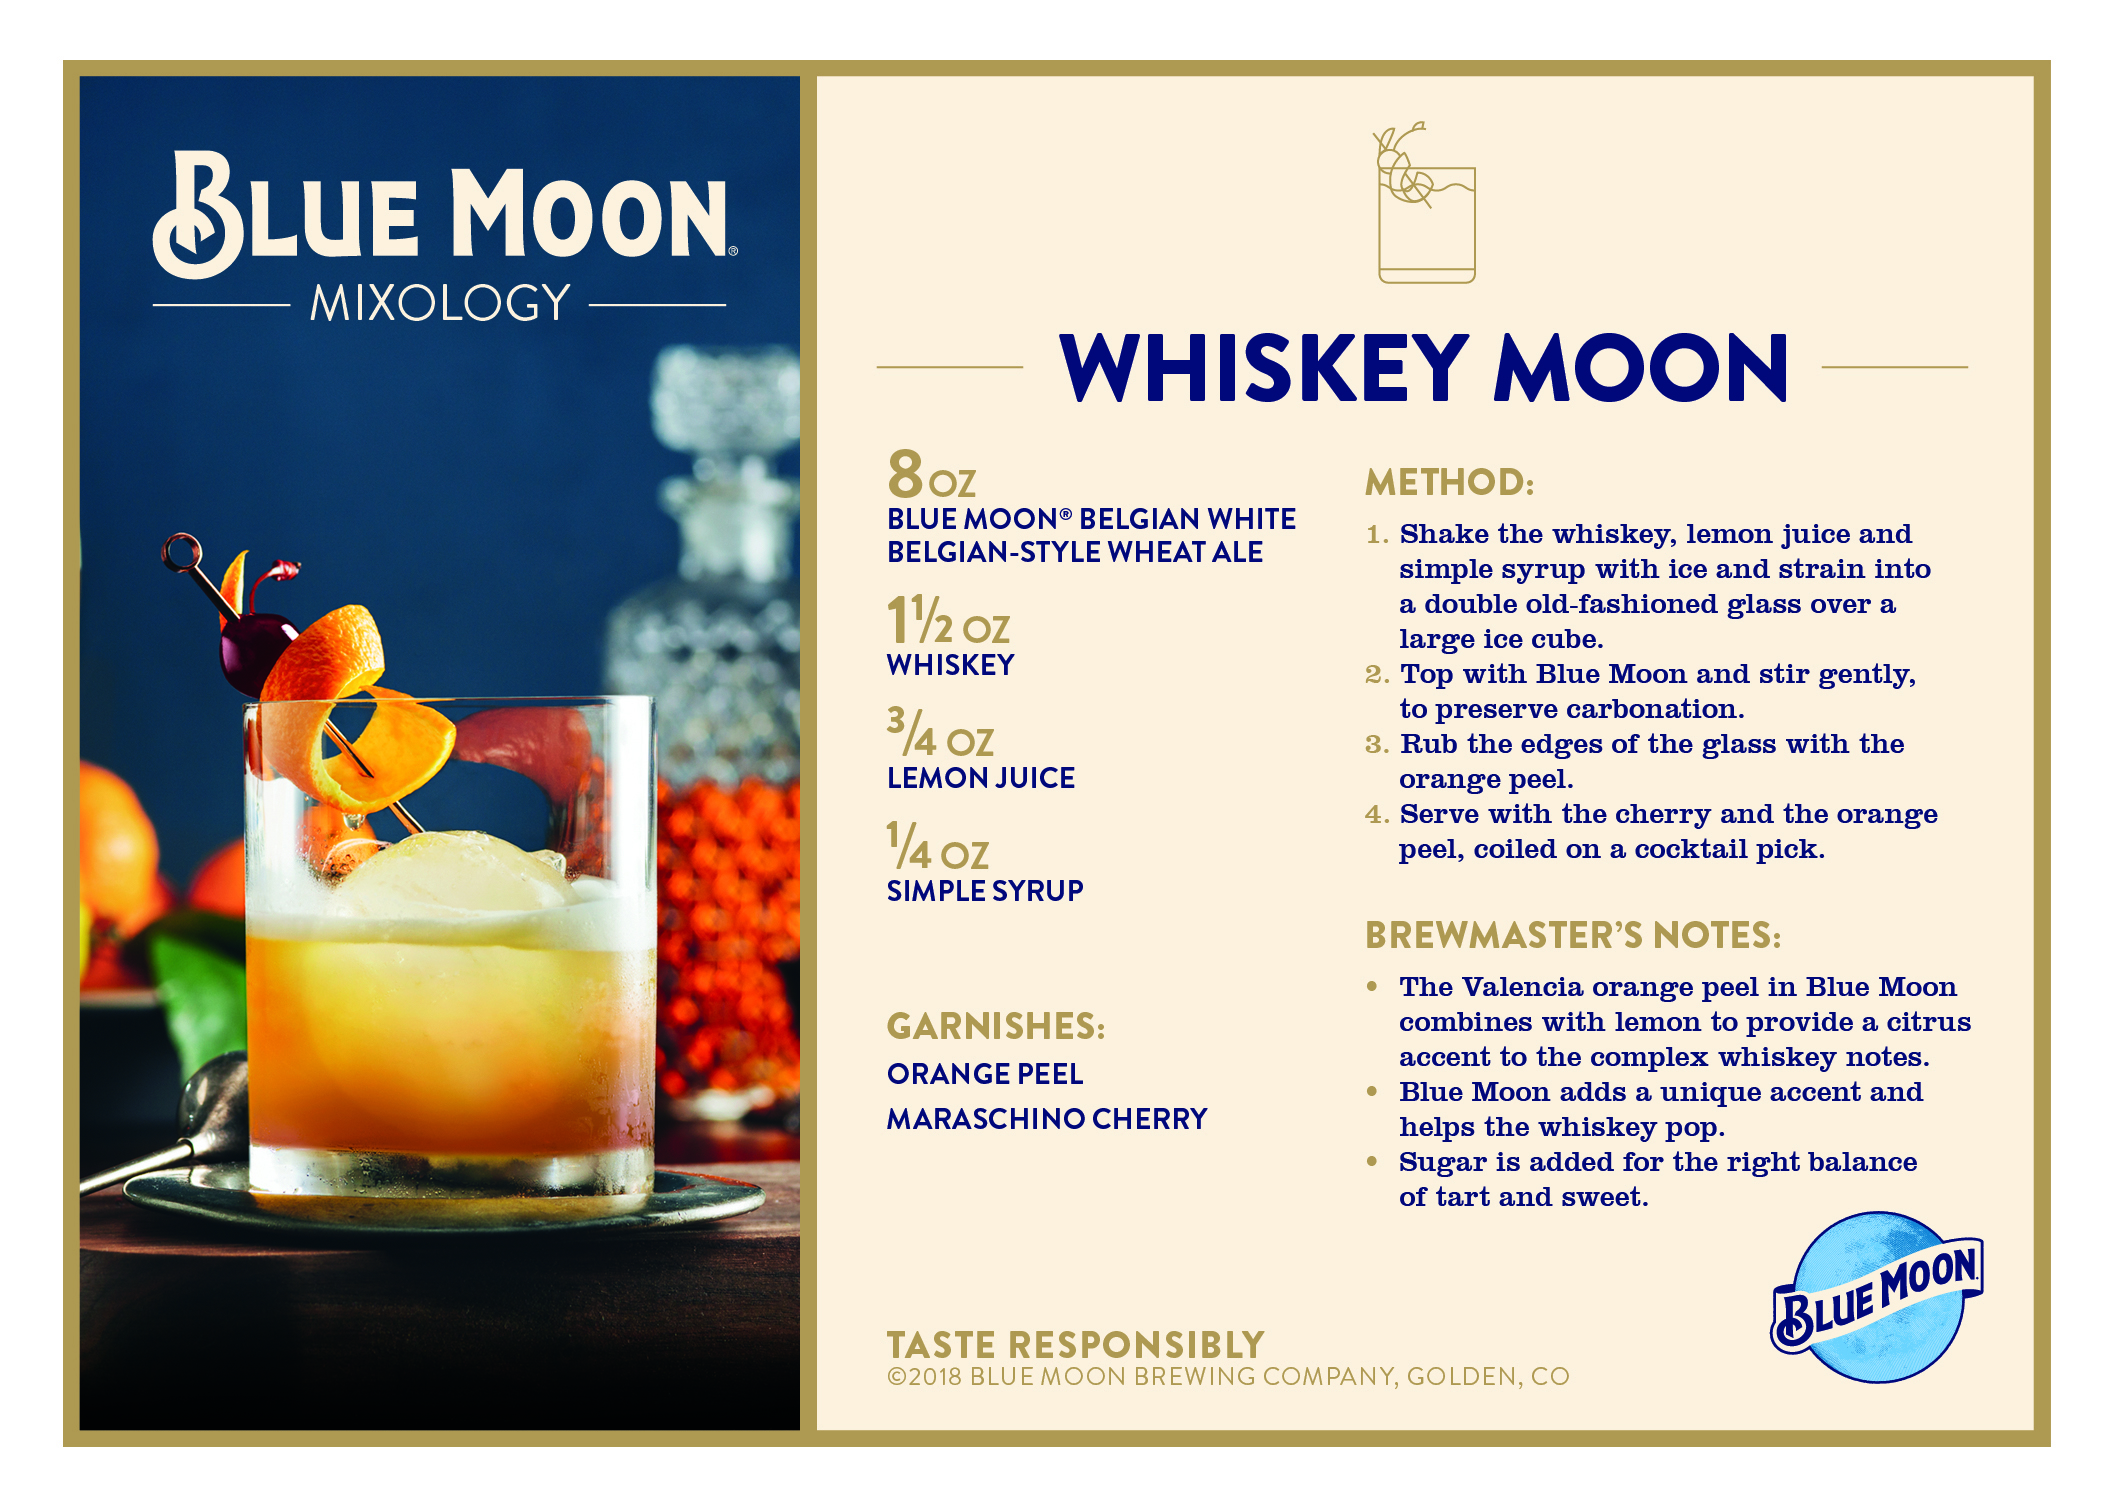 Blue Moon Dives Into Mixology Creates 4 New Cocktails